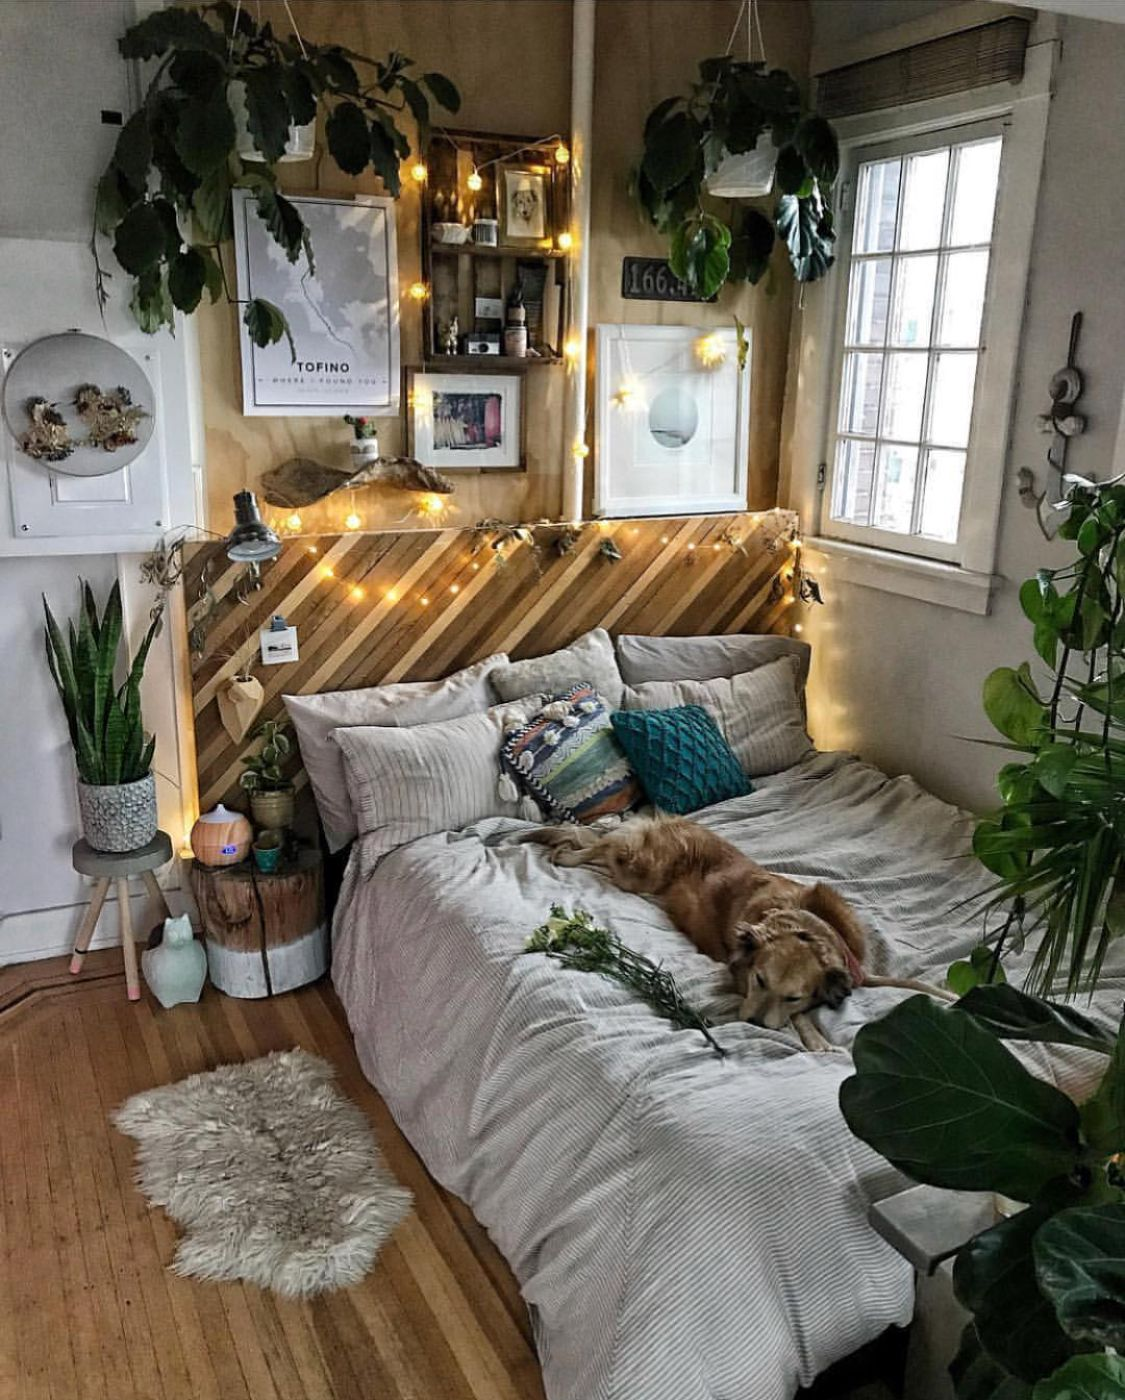 Ok I Know I Will Never Have A Room Like This But It Still Looks Cool